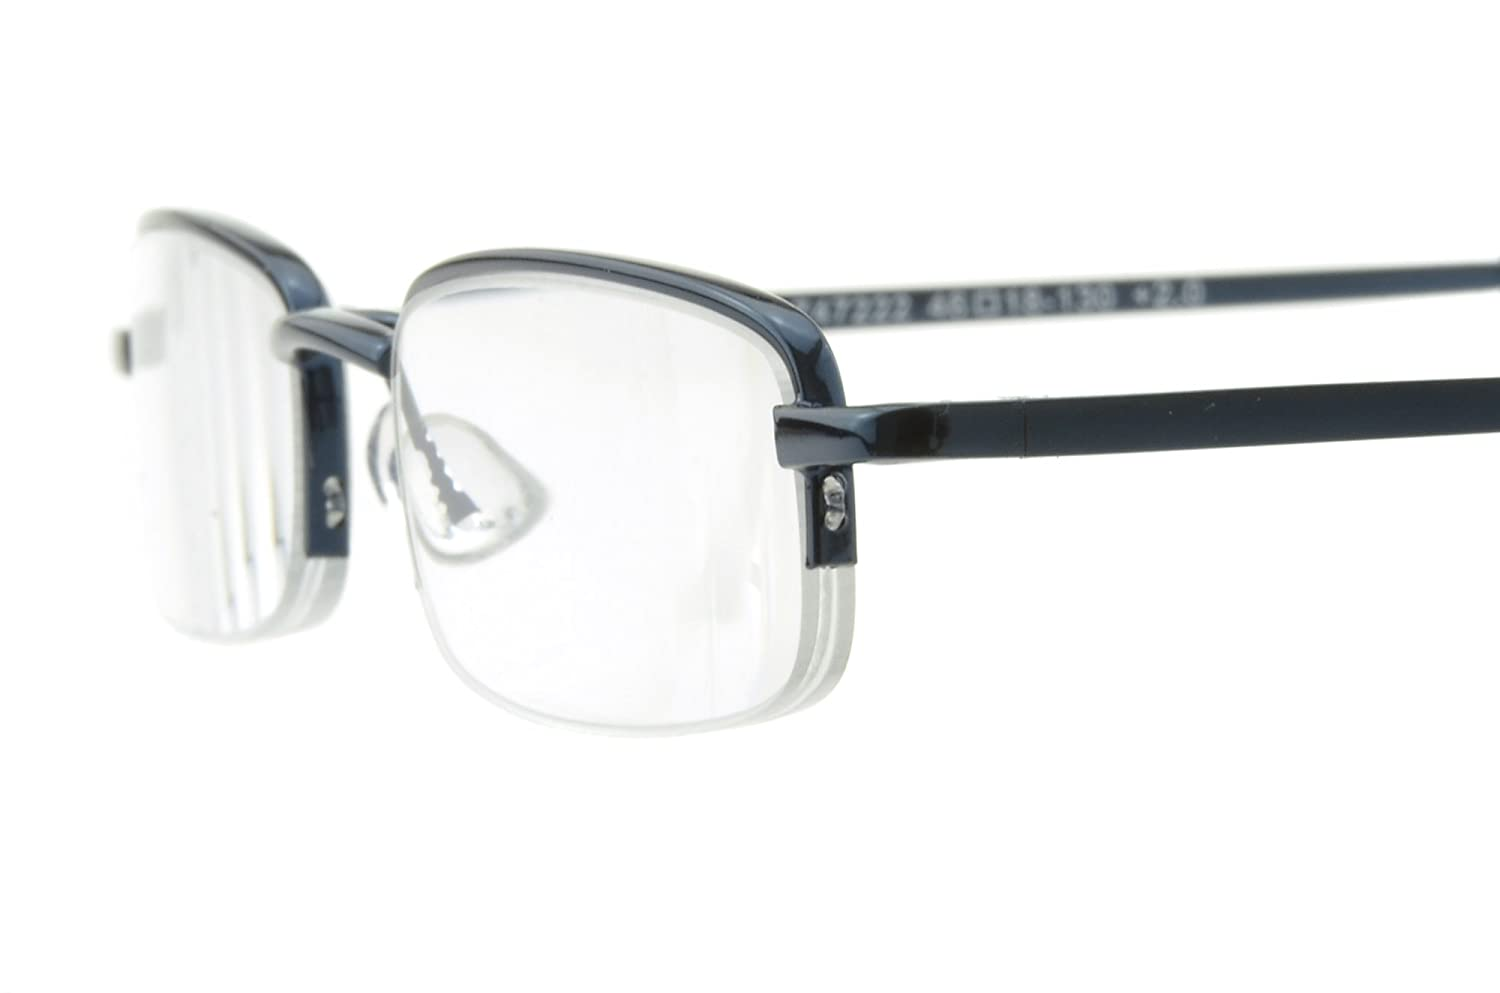 a4f126d24e Edison King Reading glasses semi rimless - in a narrow design with a matching  case - in an array of colors and sizes  Amazon.co.uk  Sports   Outdoors